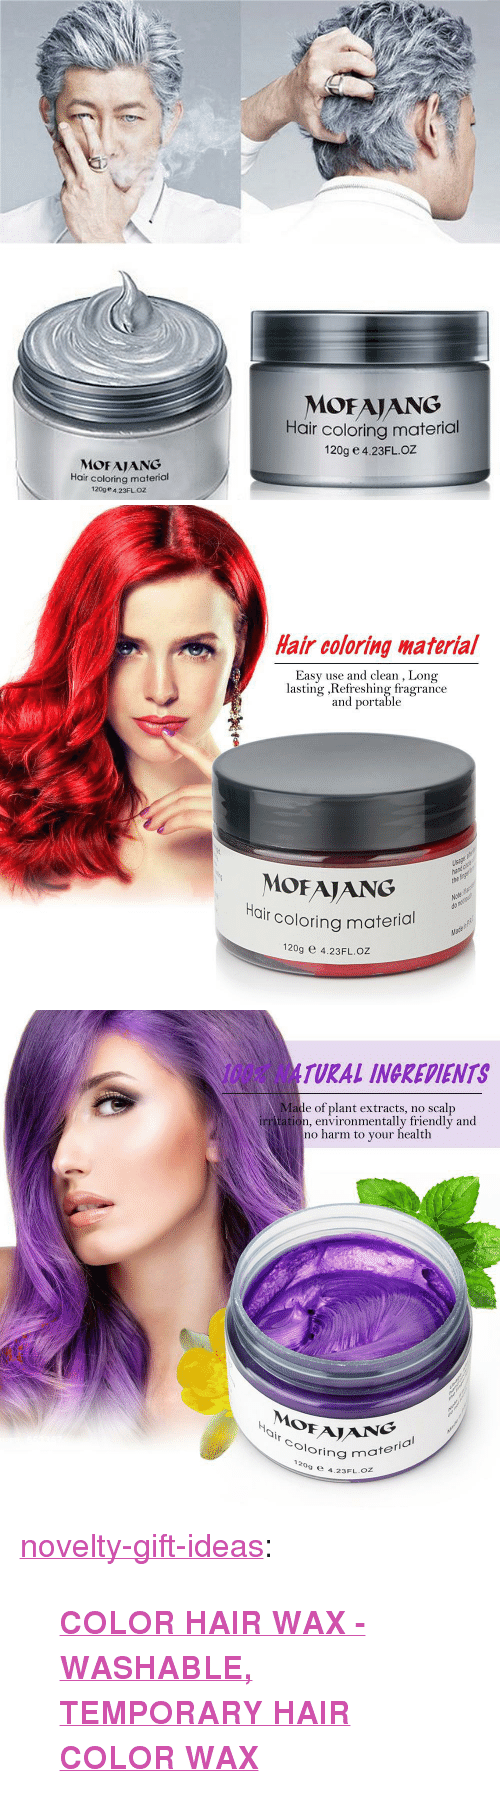 "Anaconda, Tumblr, and Blog: MOFAIANG  Hair coloring material  120g e 4.23FLOZ  MOFAJANG  Hair coloring material  120ge 4.23FLOZ   Hair coloring啭aterial  Easy use and clean , Long  lasting ,Refreshing fragrance  and portable  Usage  ha  the  MOFAJANG  r coloring material  Ha  Note  do  Ma  120g e 4.23FL.OZ   100% NATURAL INGREDIENTS  Made of plant extracts, no scalp  irr tation, environmentally friendly and  no harm to your health  0  Oloring m  ½  NG  ring material  ,  9 e 4.23FL.oZ <p><a href=""https://novelty-gift-ideas.tumblr.com/post/170243494438/color-hair-wax-washable-temporary-hair-color"" class=""tumblr_blog"">novelty-gift-ideas</a>:</p><blockquote><p><b><a href=""https://slangzteez.com/products/color-hair-wax"">COLOR HAIR WAX - WASHABLE, TEMPORARY HAIR COLOR WAX</a></b></p></blockquote>"